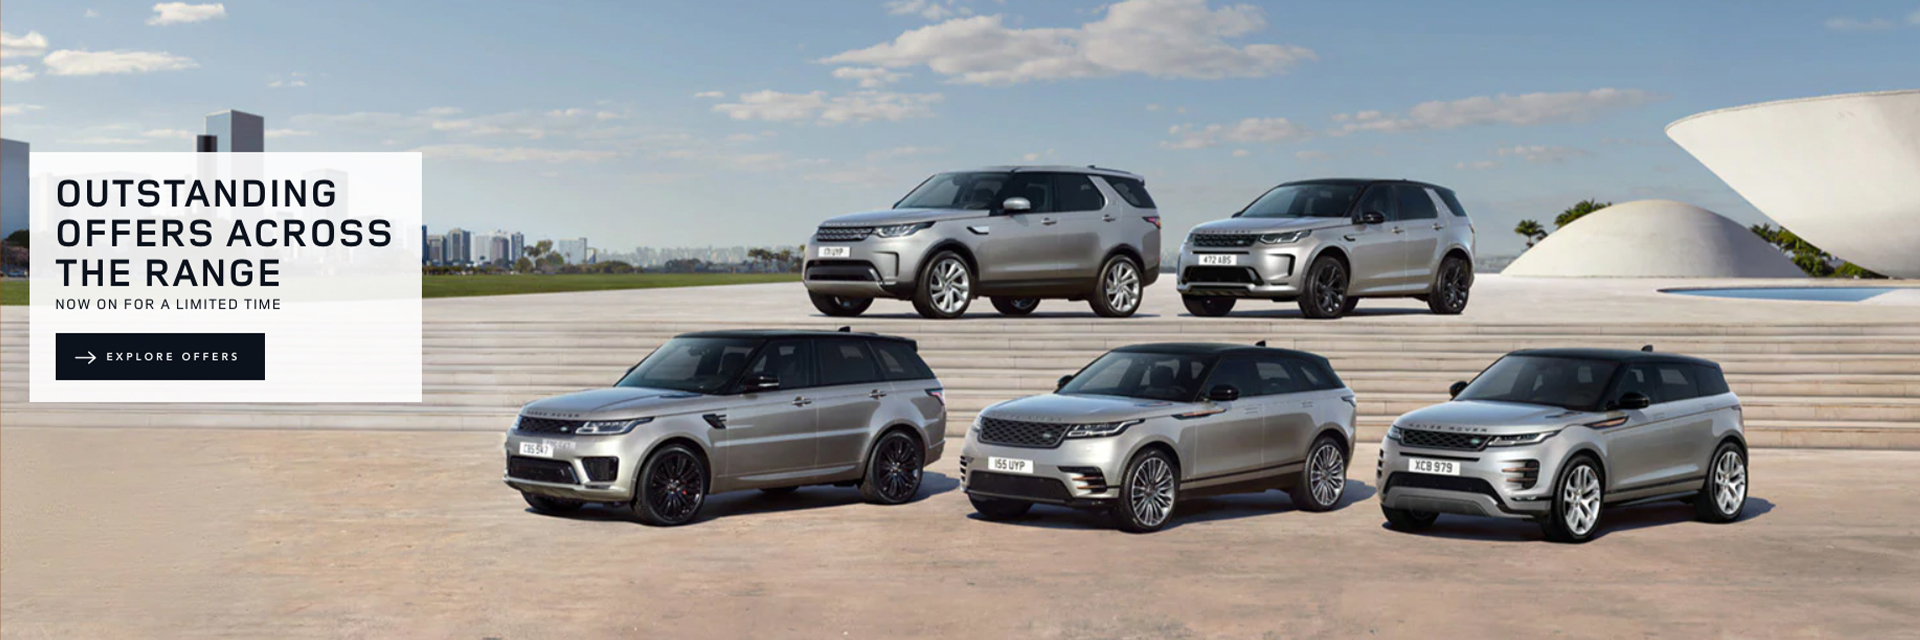 Land Rover January Offers